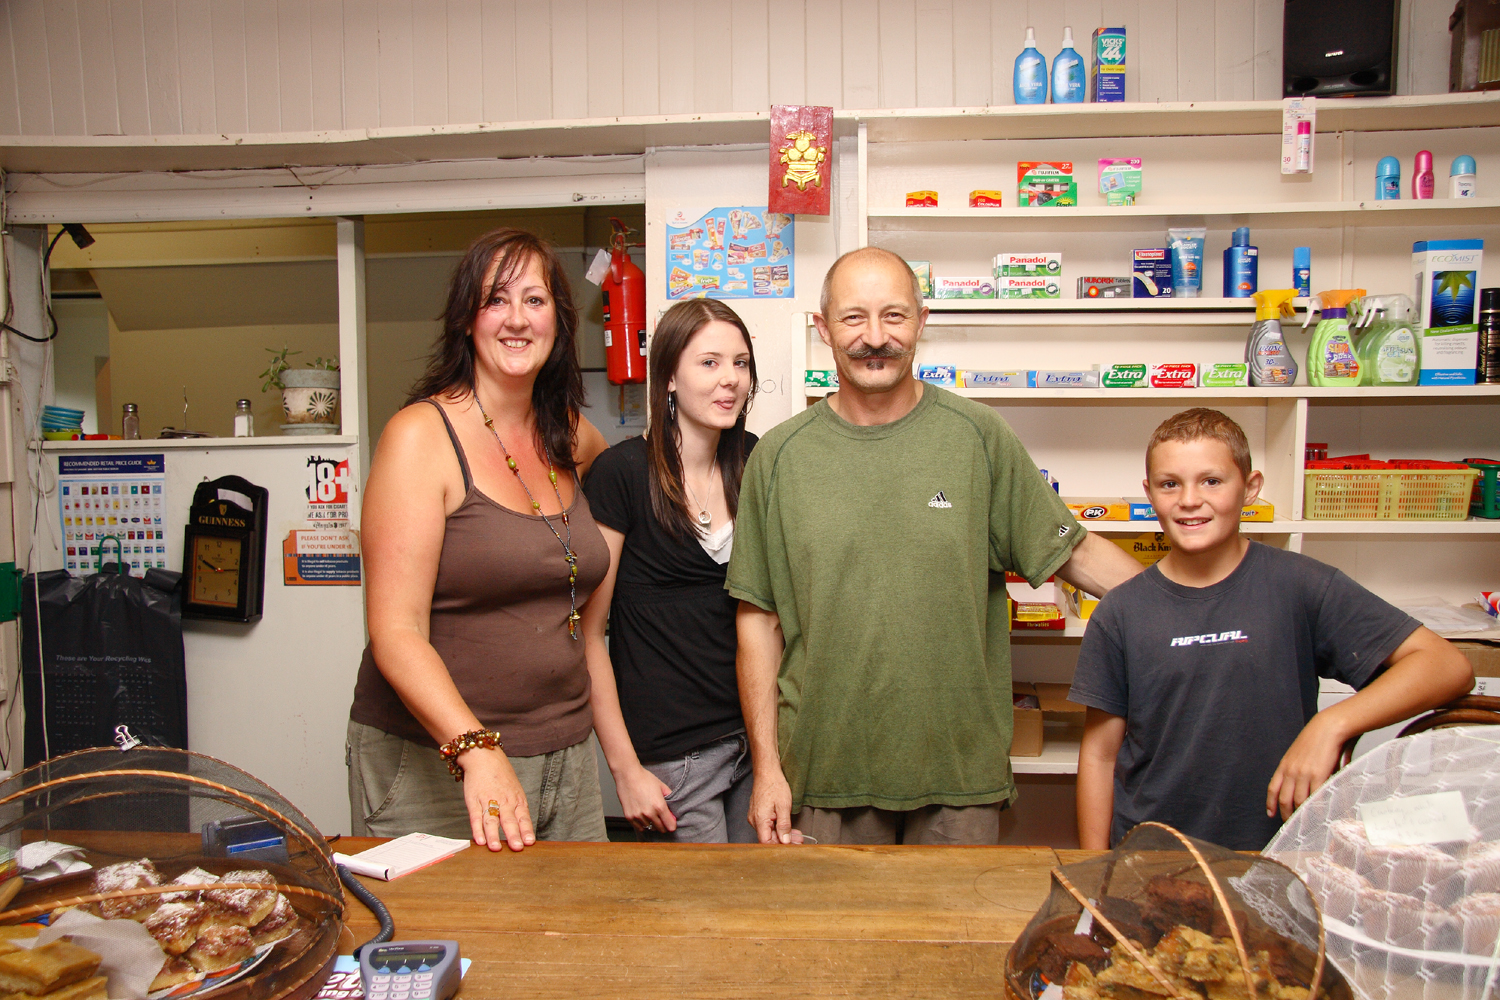 Huia Store, from left:Mandy, Grace, David & Oliver